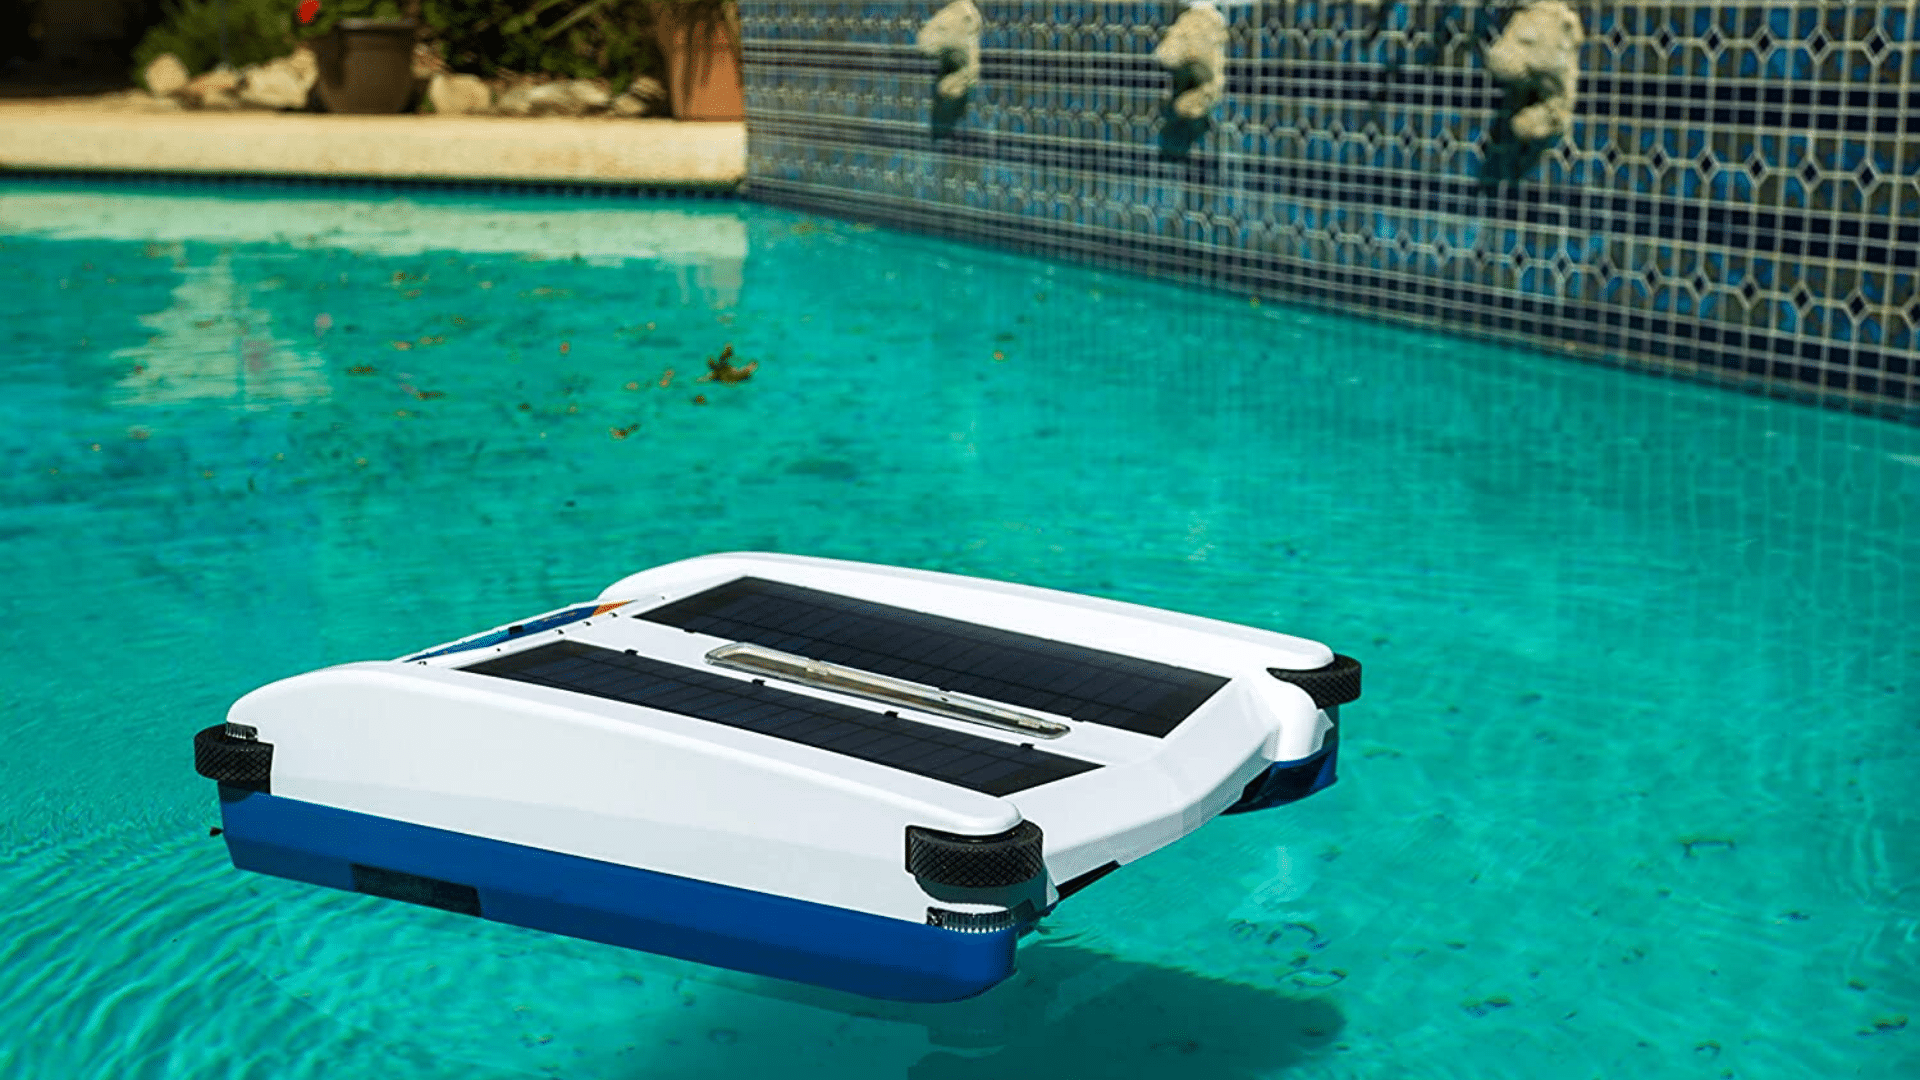 image of Solar Breeze – Automatic Pool Cleaner NX2 Cleaning Robot In Pool